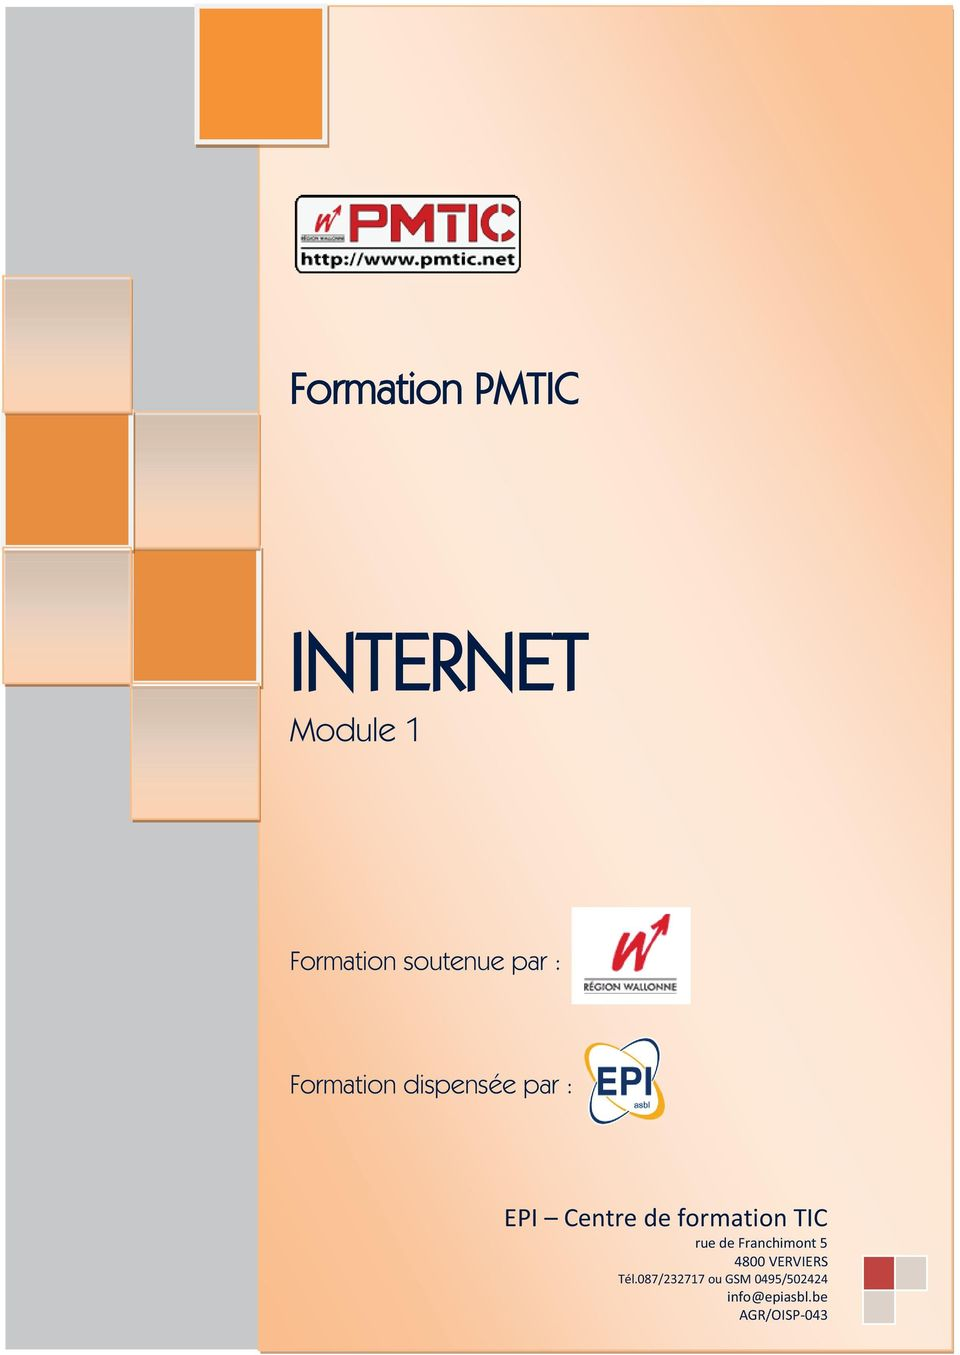 pmtic.net rue de Franchimont 5 4800 VERVIERS Tél.